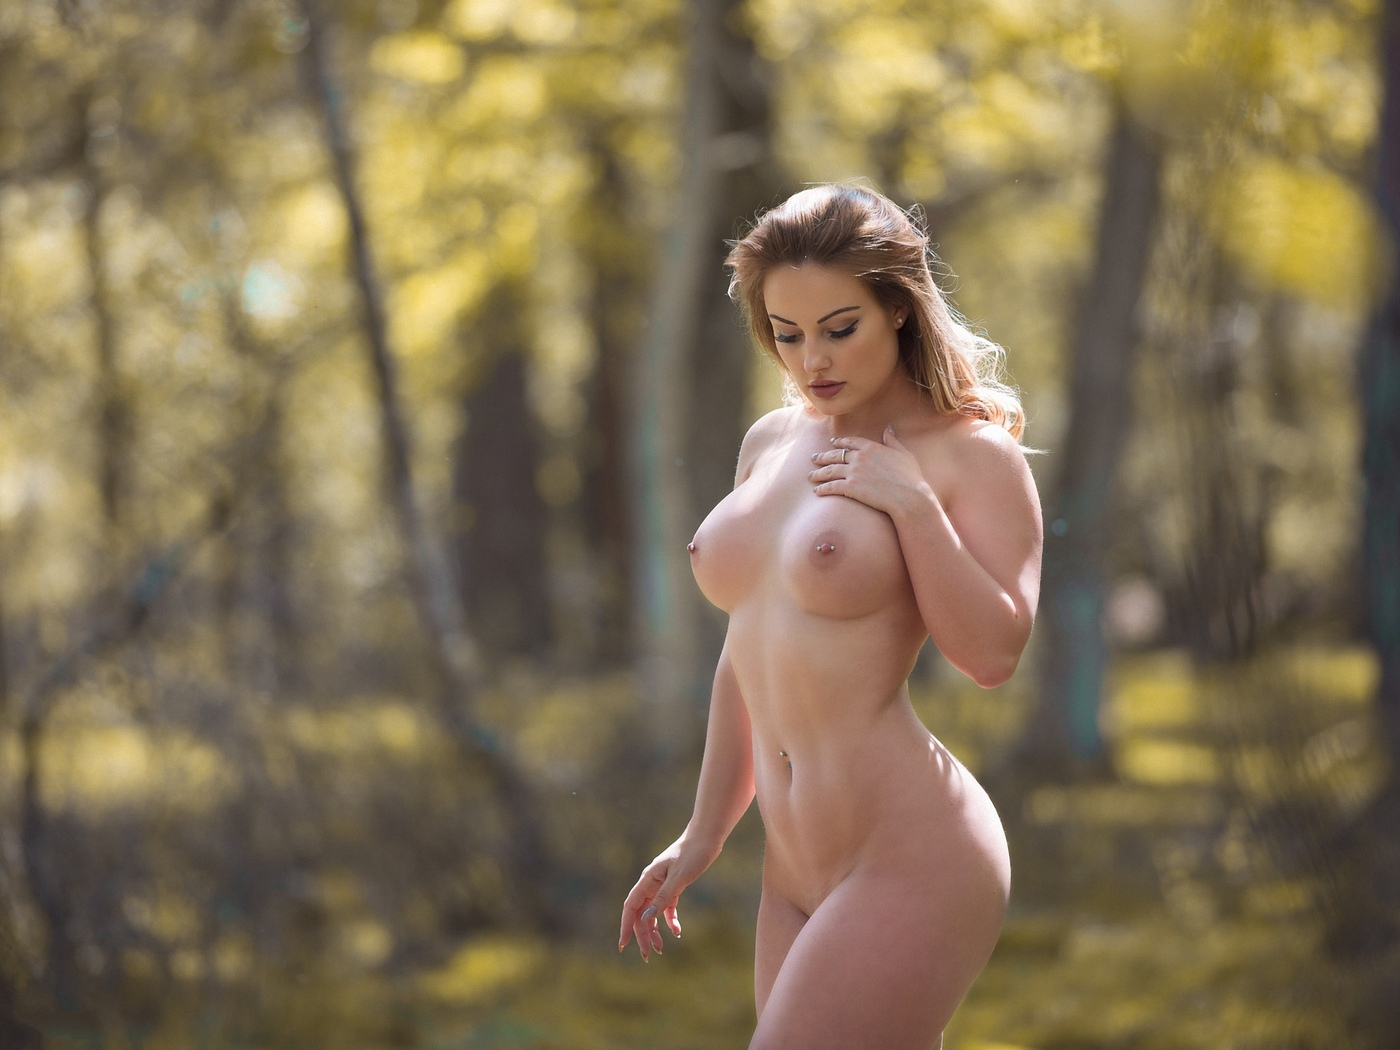 Hd beautiful wife naked photo — pic 10